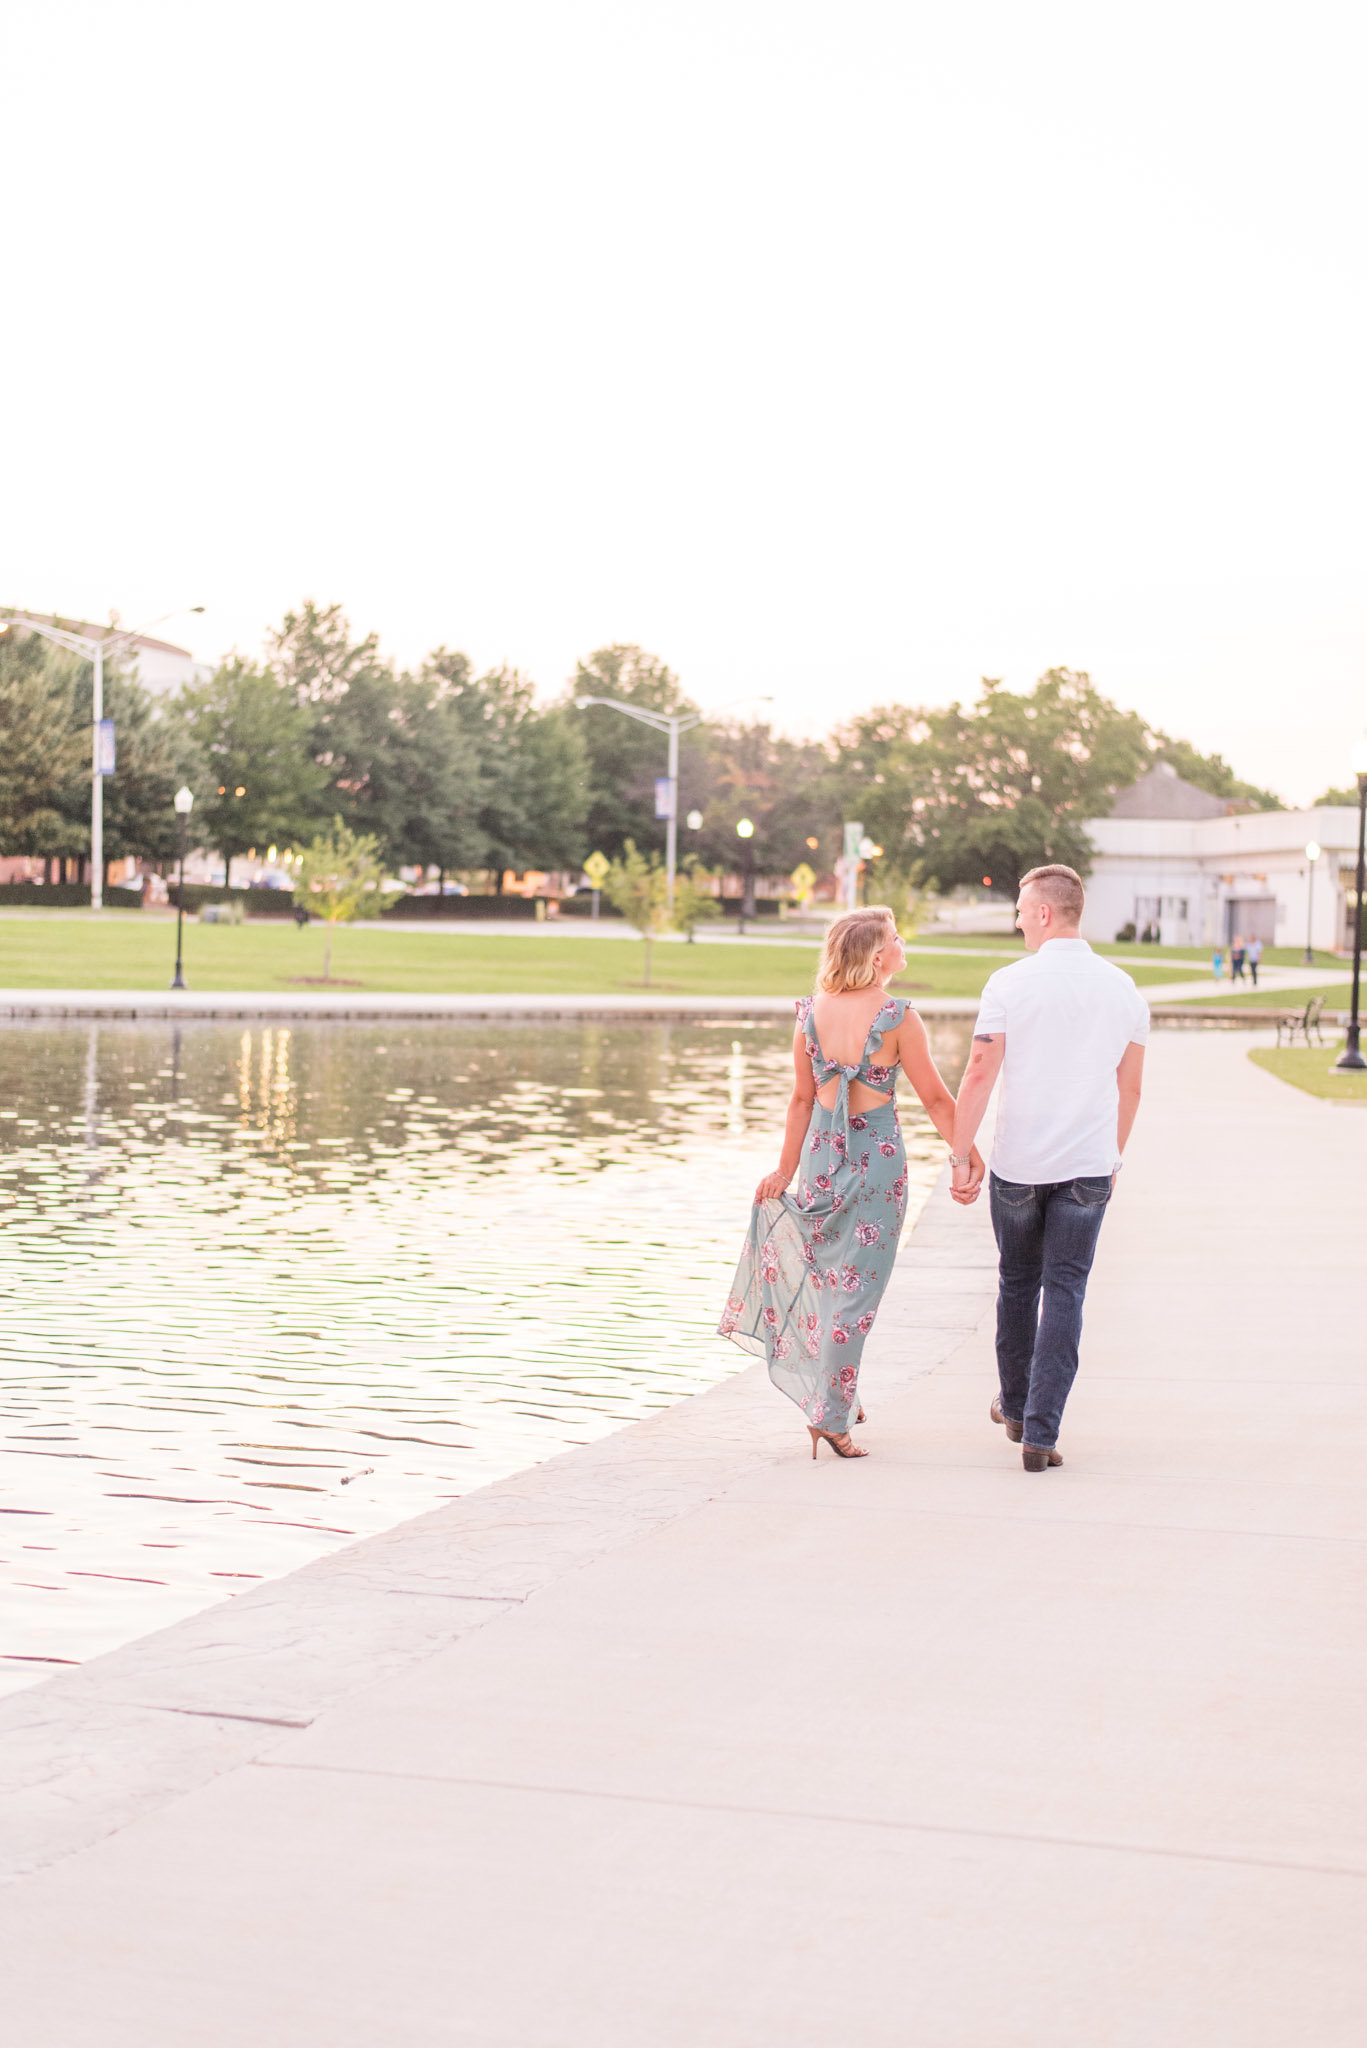 Couple walks by canal at sunset.